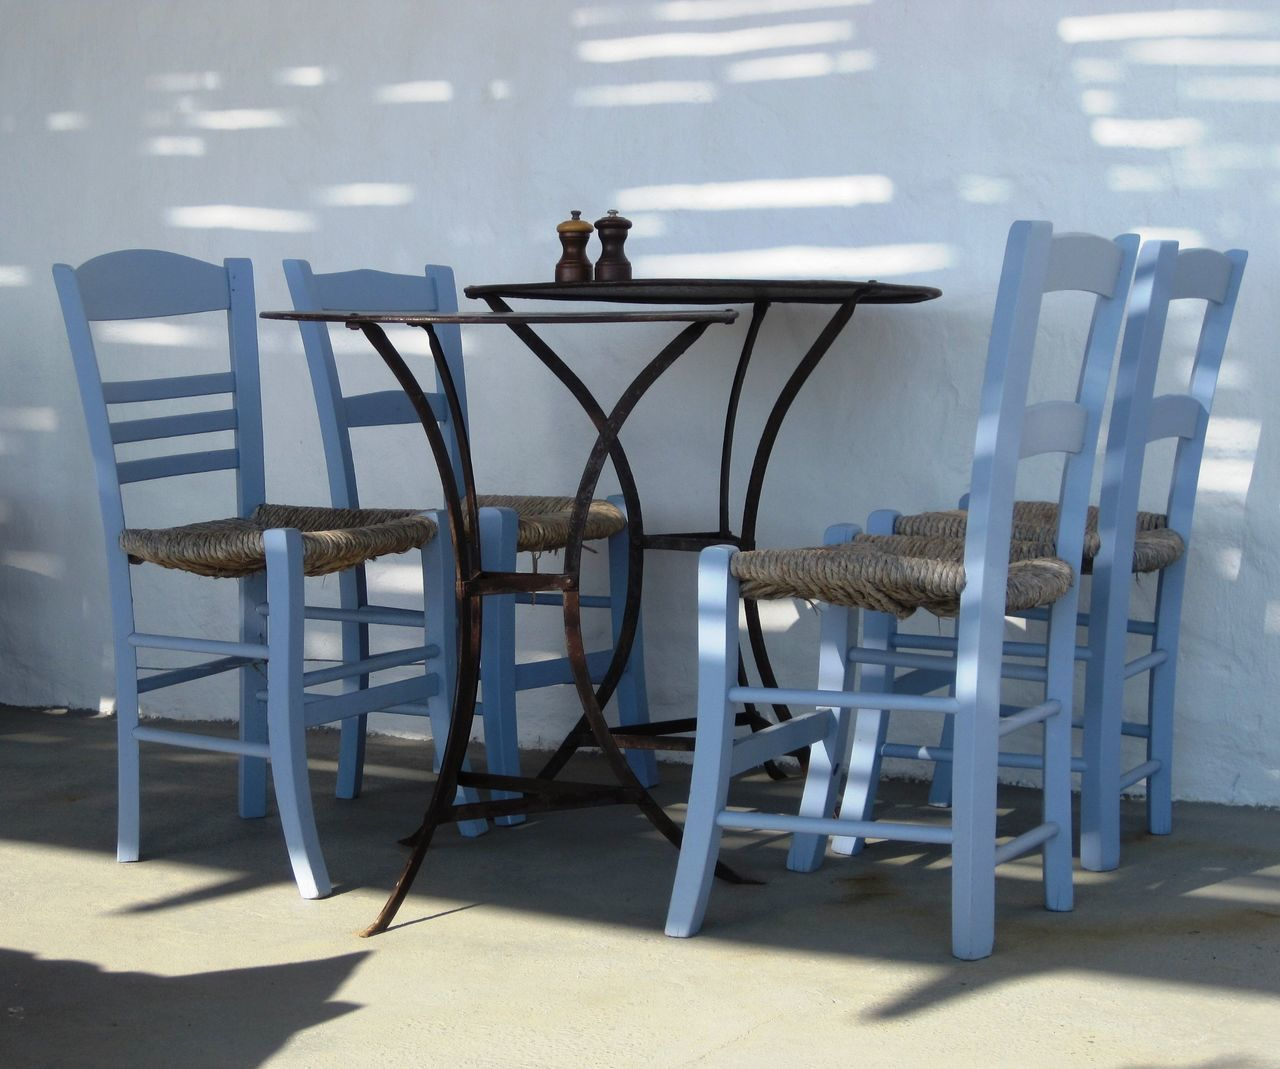 chair, table, empty, day, outdoors, seat, shadow, sunlight, furniture, beach, no people, animal themes